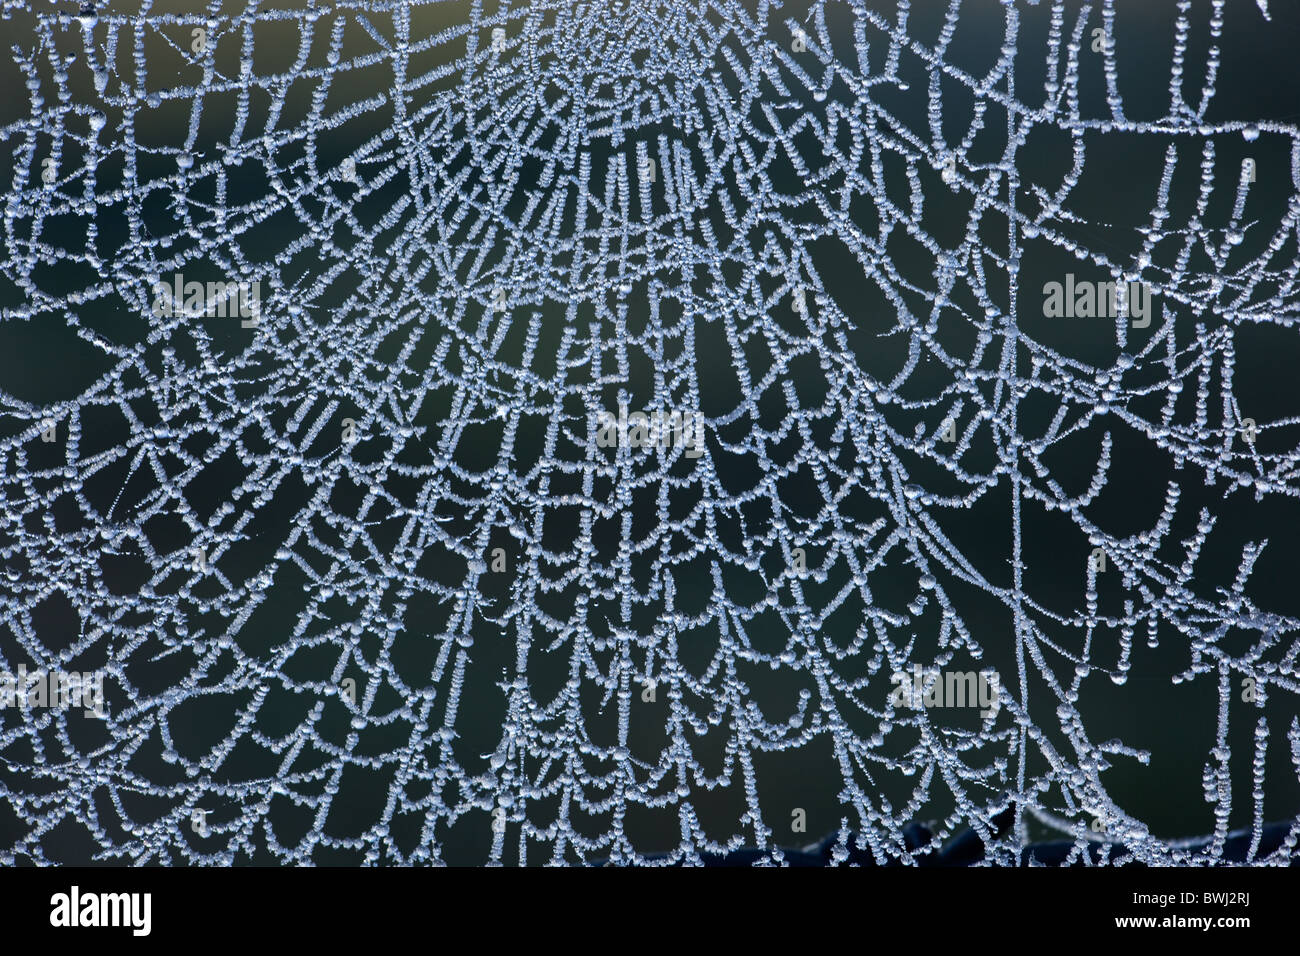 Spiders Web in frost on wire fence - Stock Image